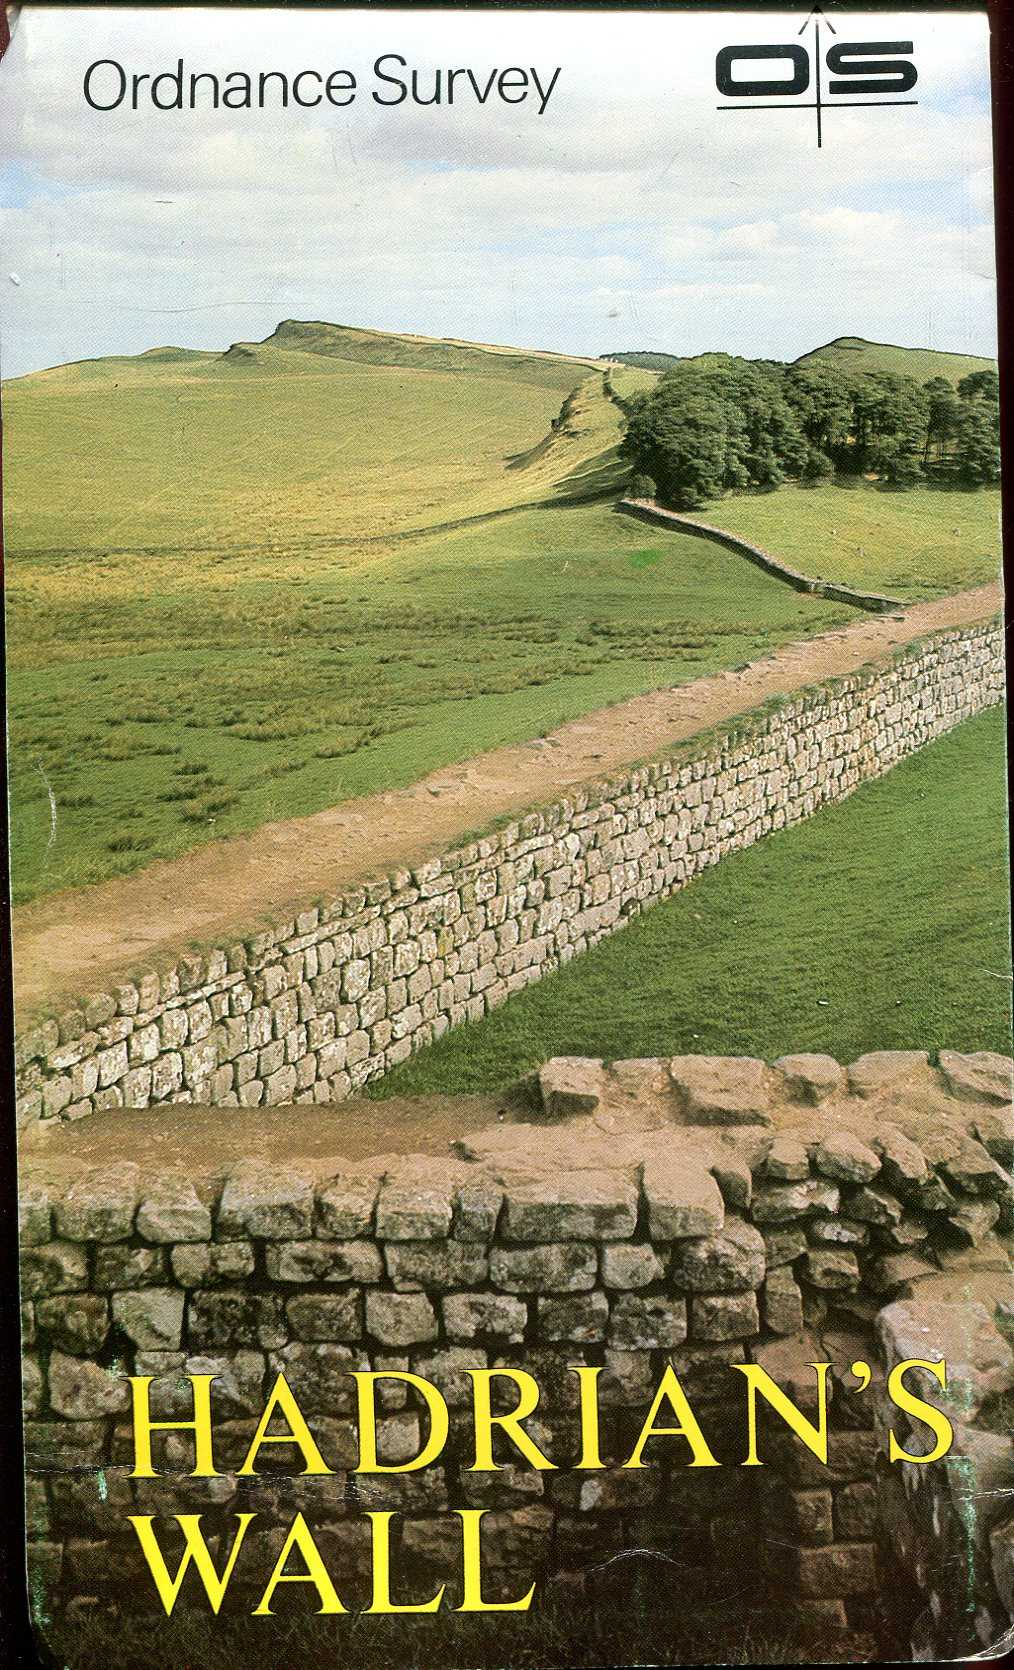 Image for Ordnance Survey Map of Hadrian's Wall 1: 25 000 scale